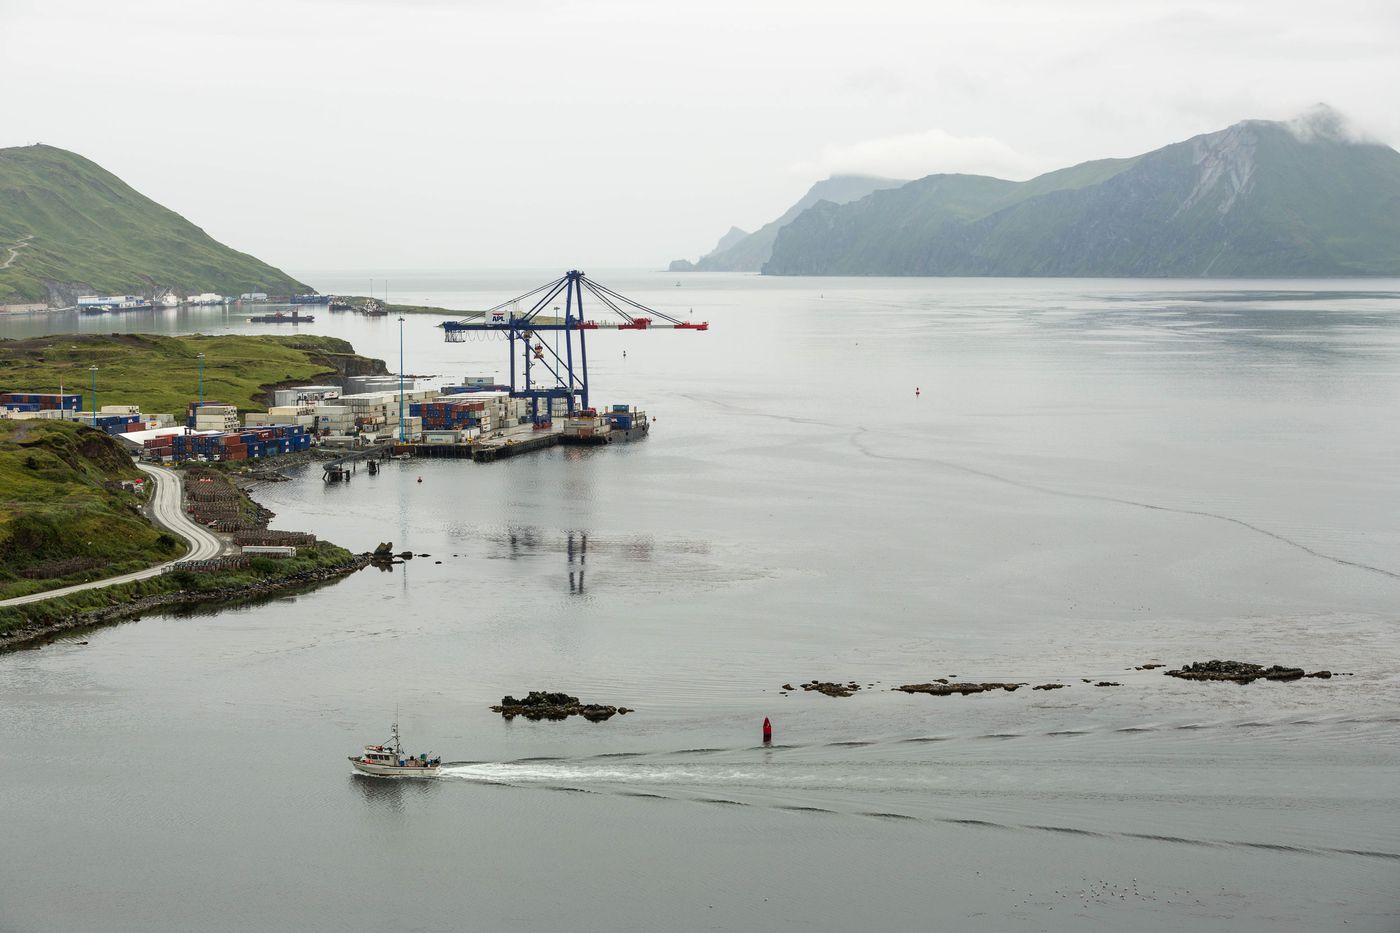 A fishing boat returns to harbor in Unalaska, Alaska on August 31, 2012. The city's port of Dutch Harbor is the largest fisheries port in the U.S., and is positioned to become a major trans-shipment port as Arctic Ocean shipping routes open up.